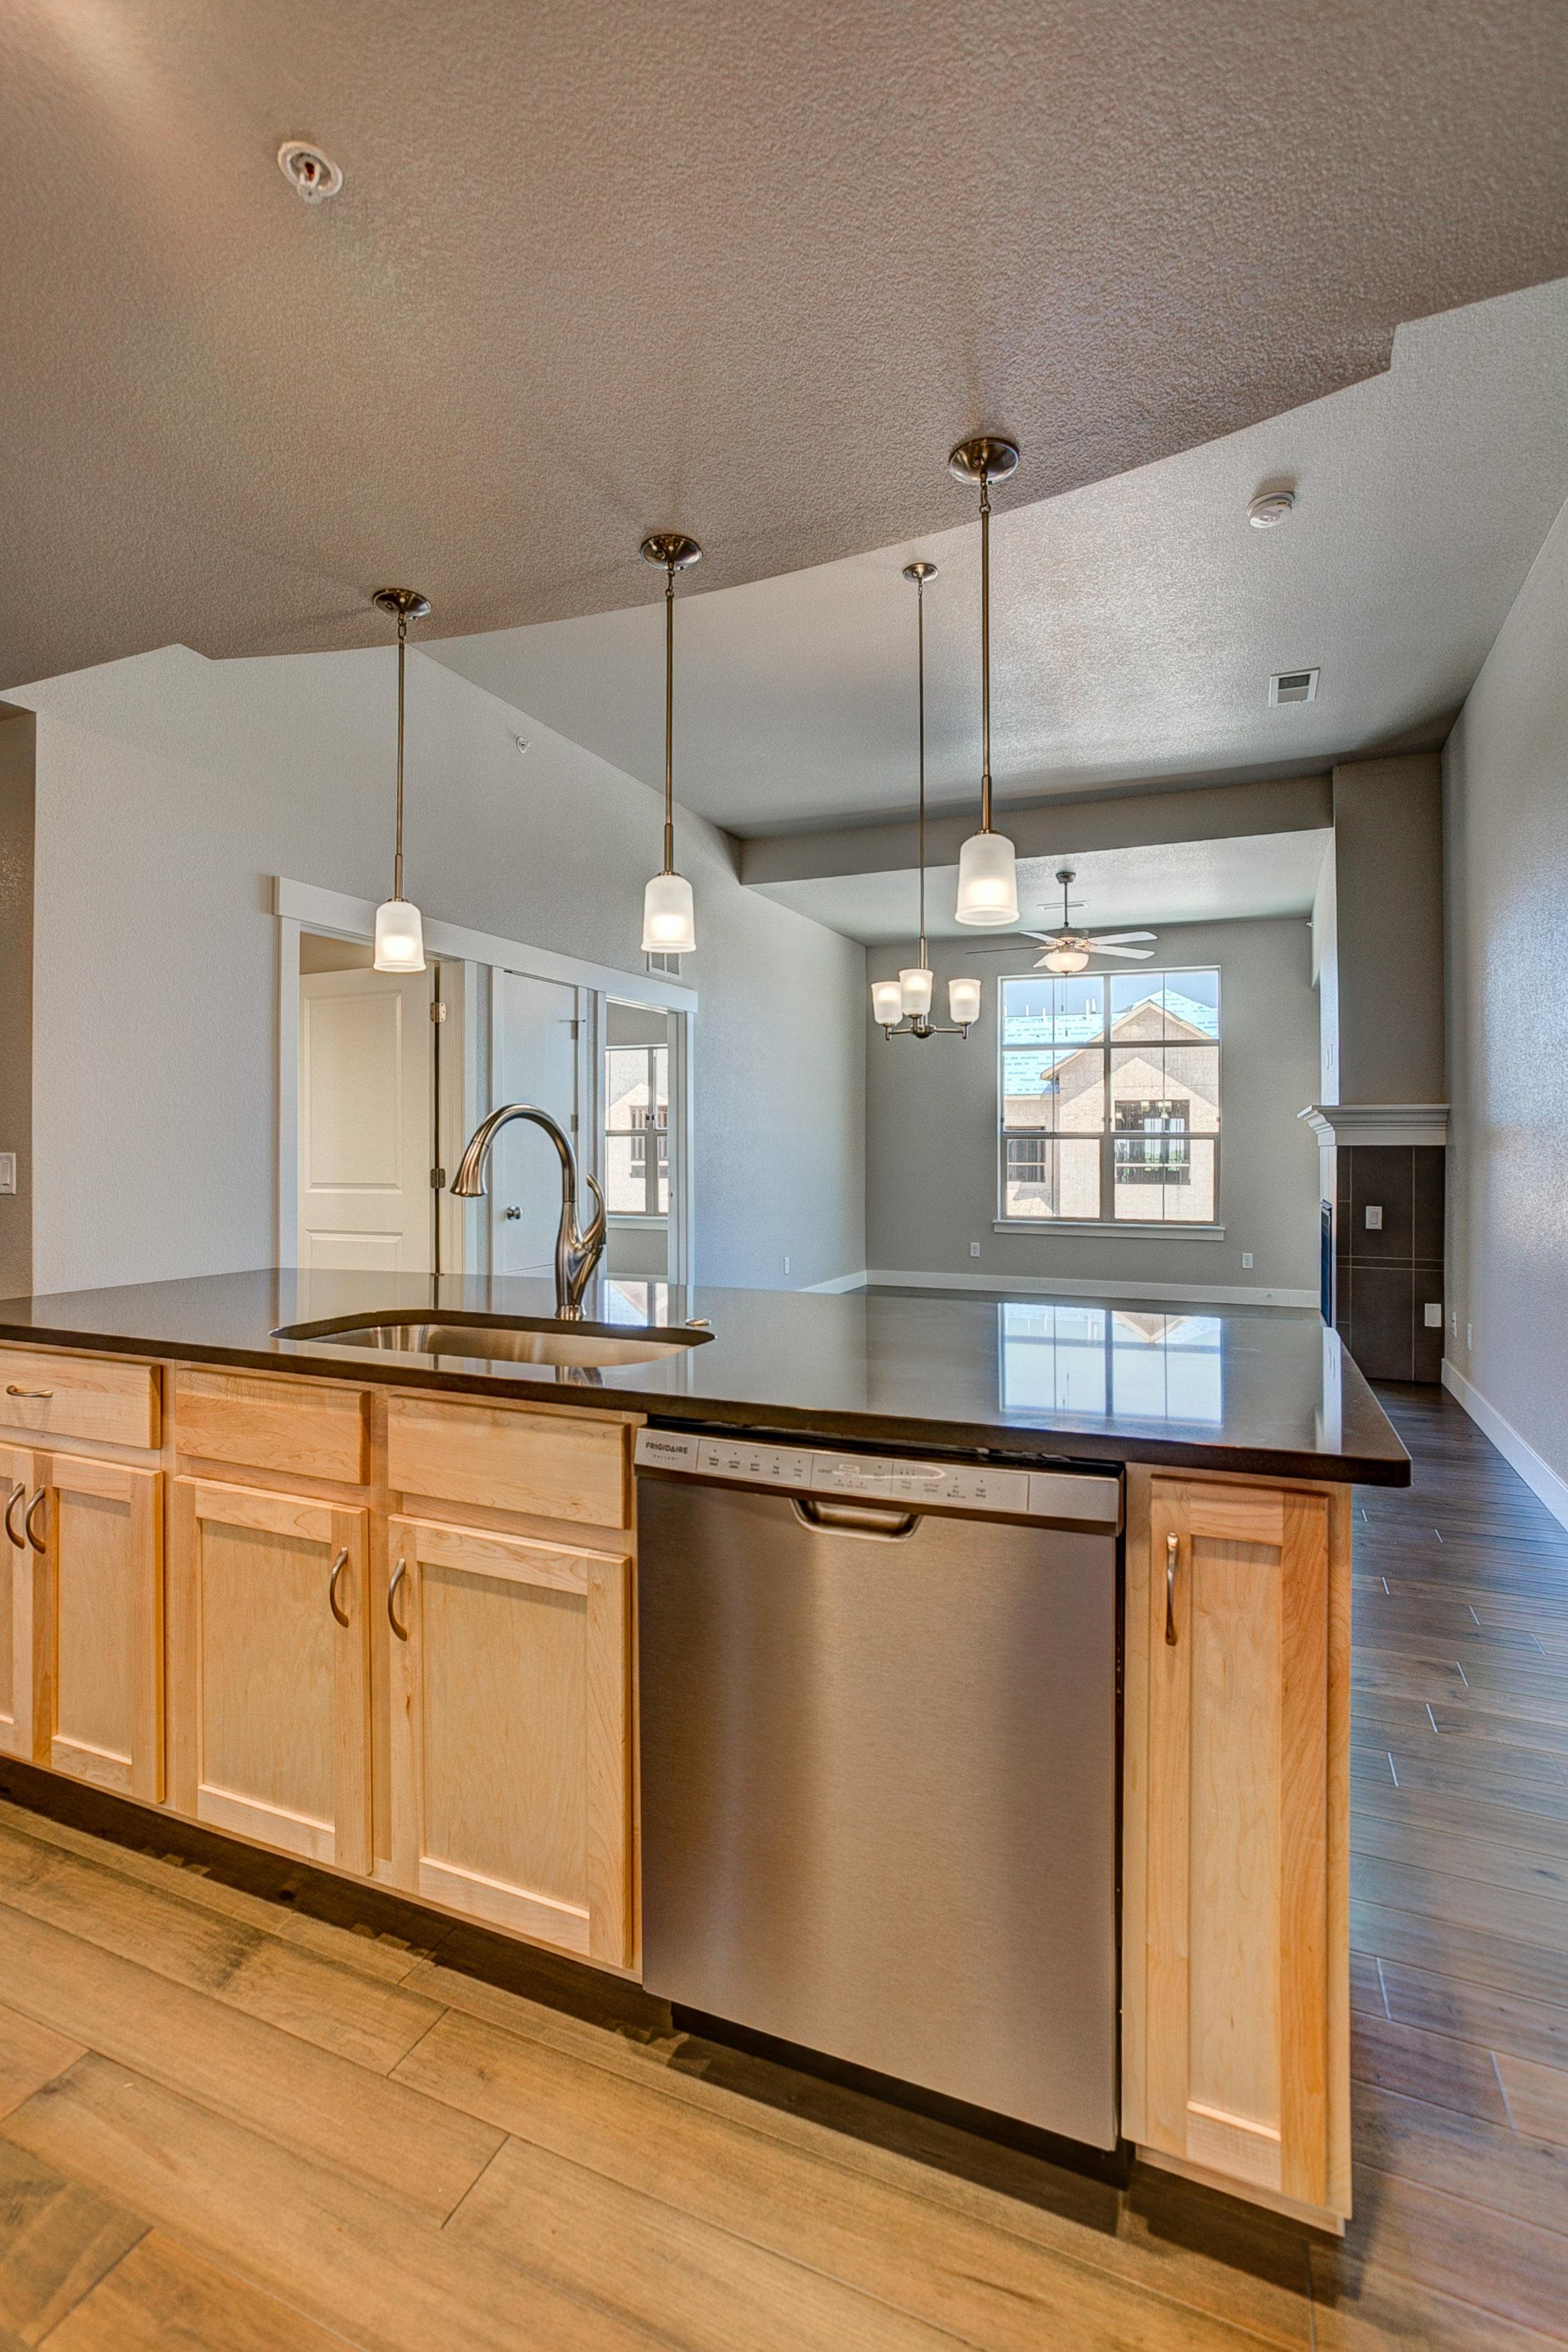 'Portofino Flats at La Riva' by Landmark Homes - Colorado  in Fort Collins-Loveland